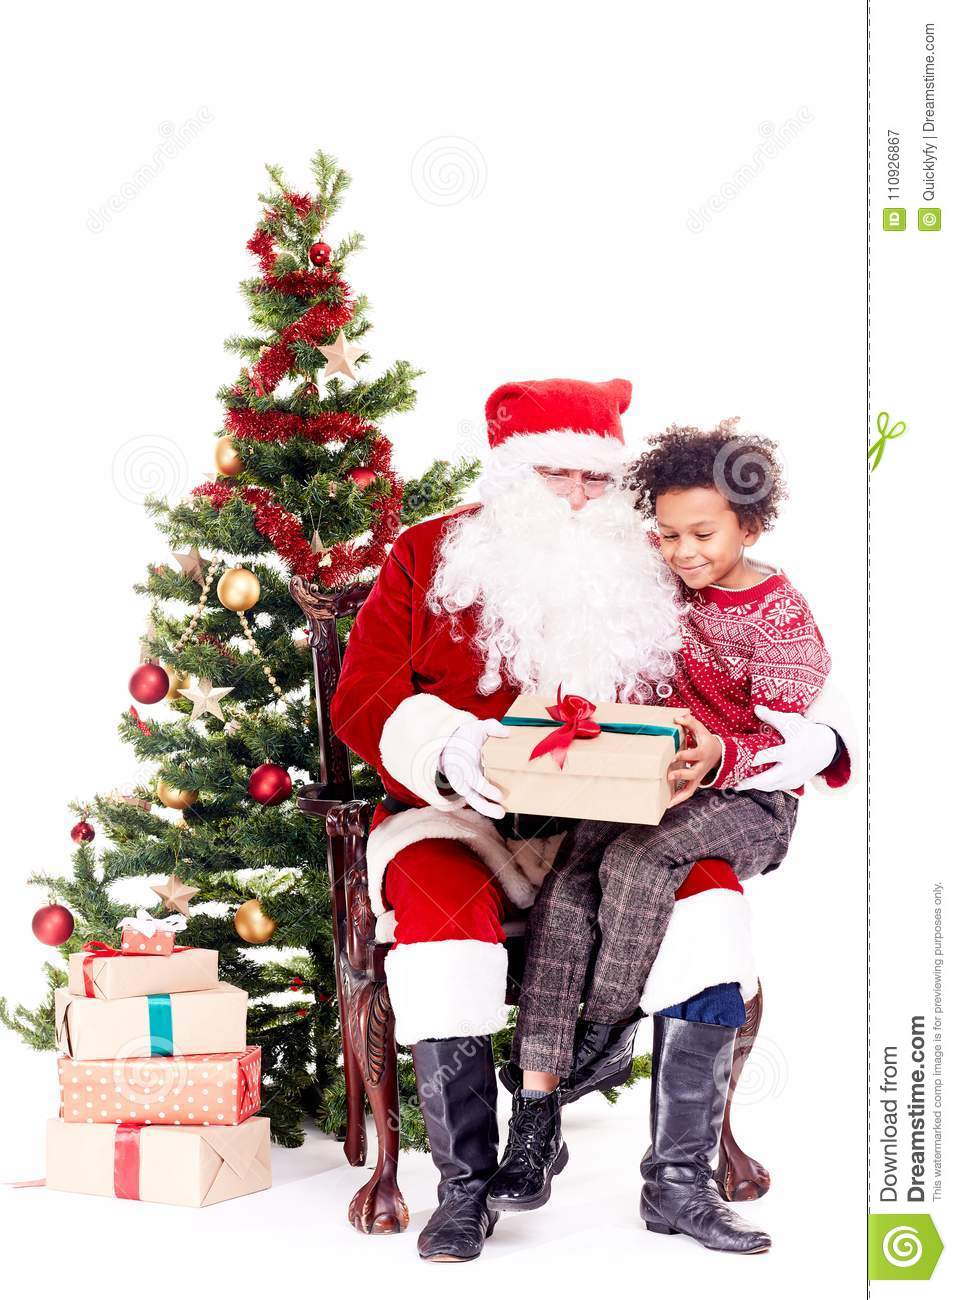 Christmas Gift From Santa Claus Stock Image - Image of cultures ...